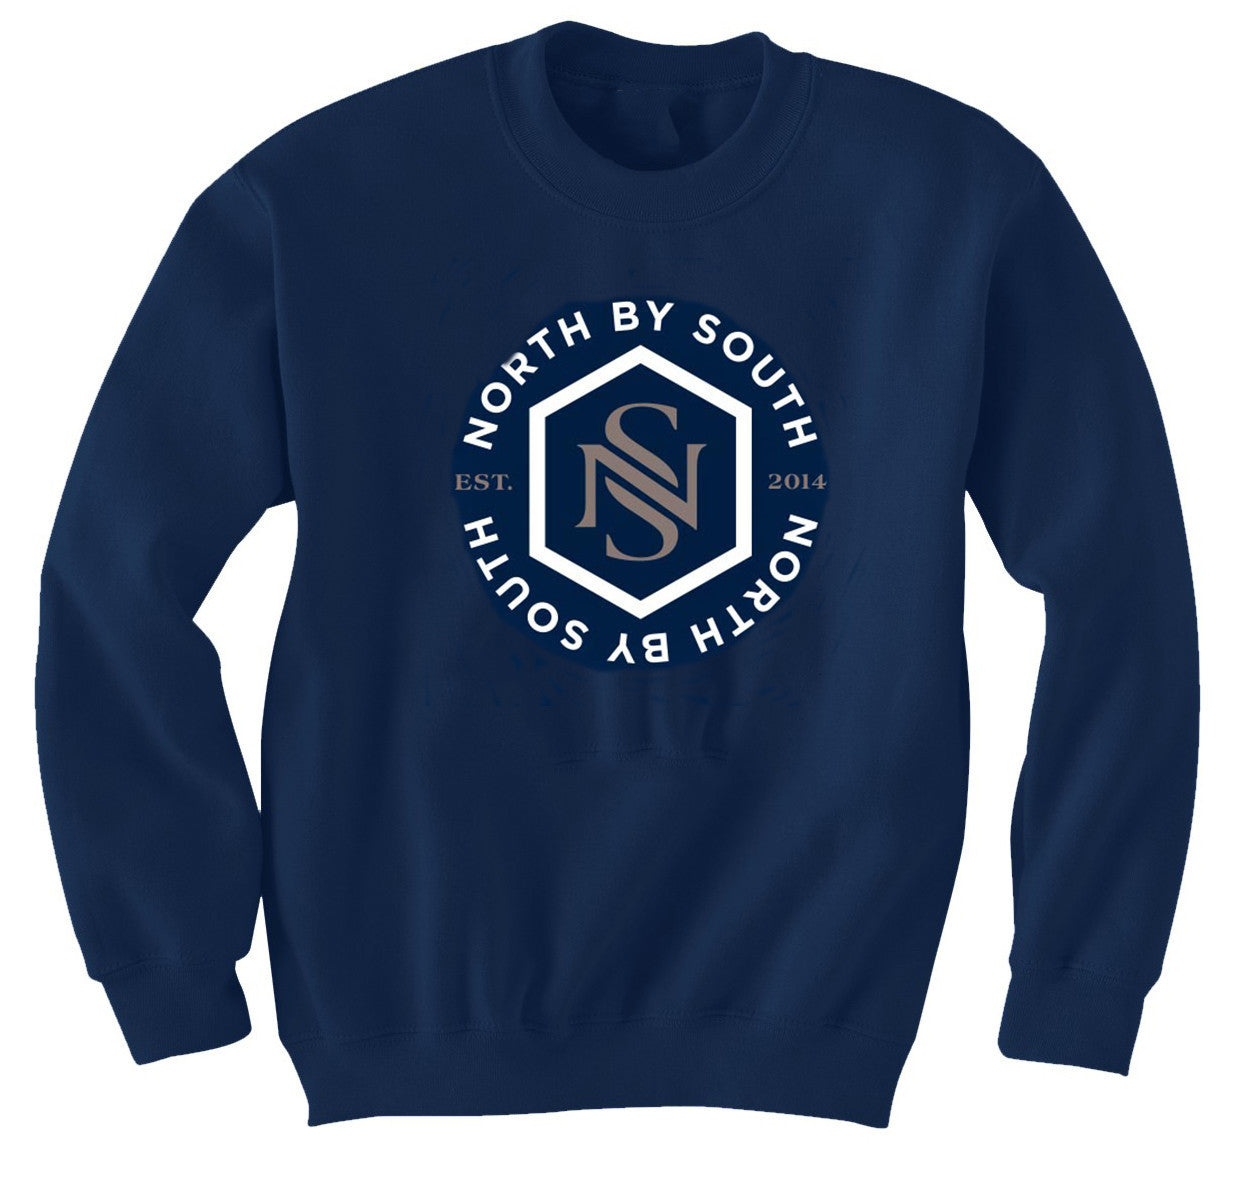 North by South™ Logo Crewneck